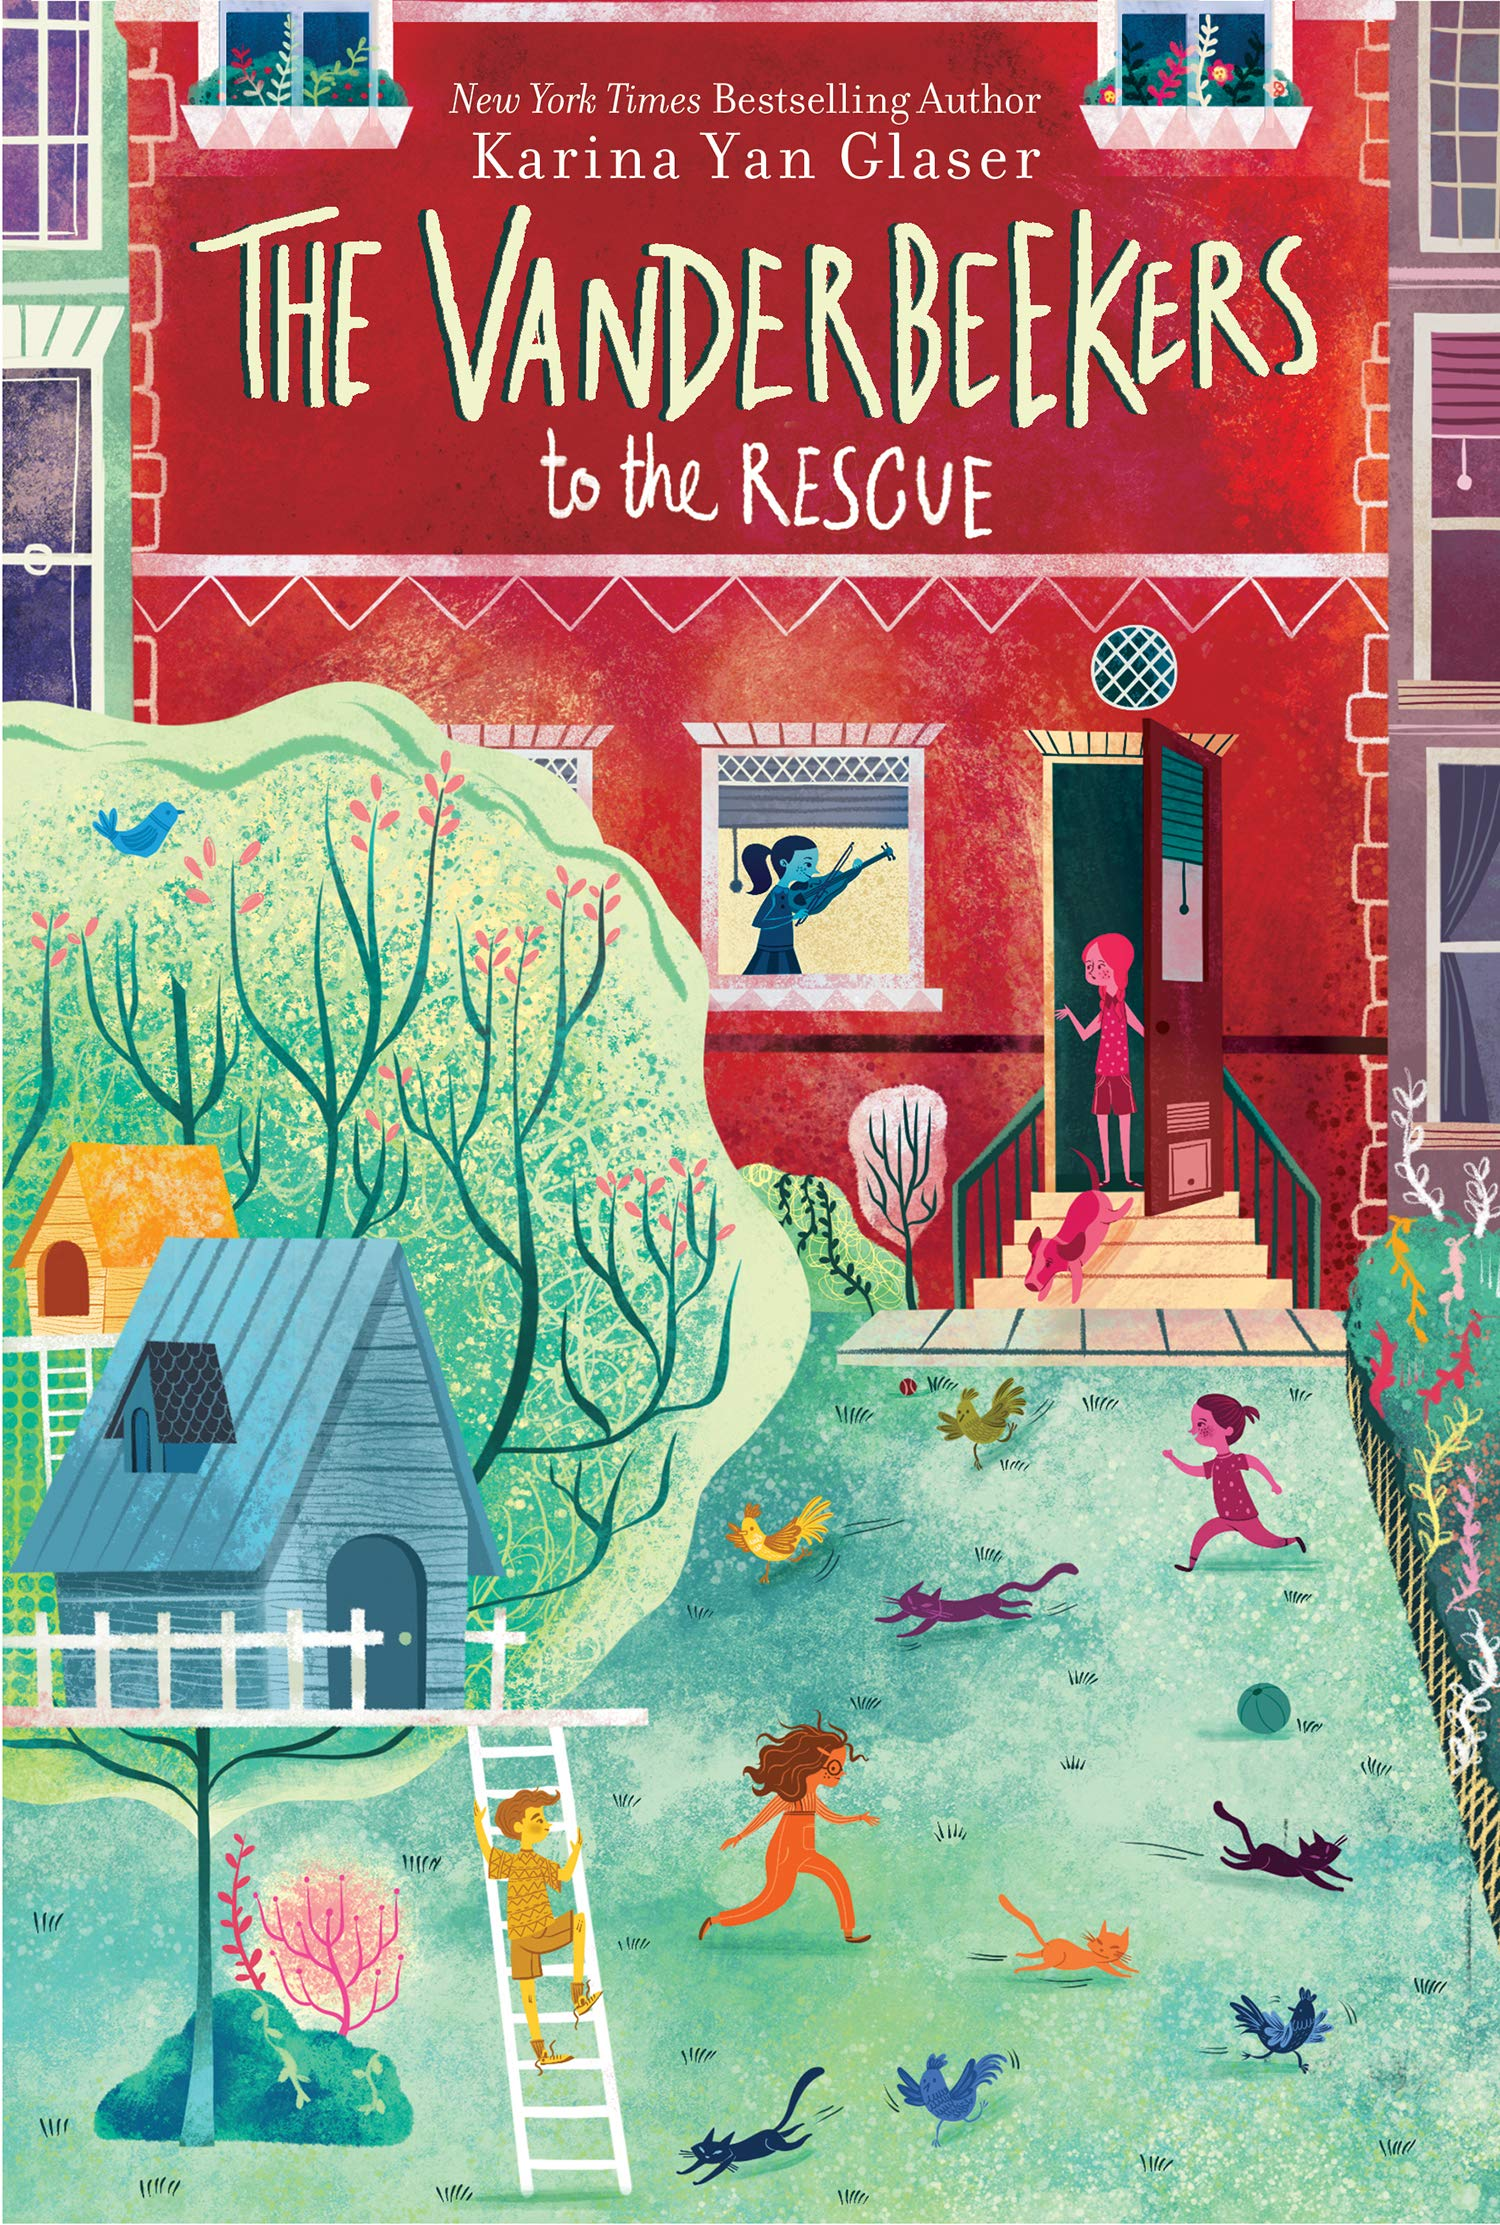 The Vanderbeekers to the Rescue: Yan Glaser, Karina: 9781328577573 ...